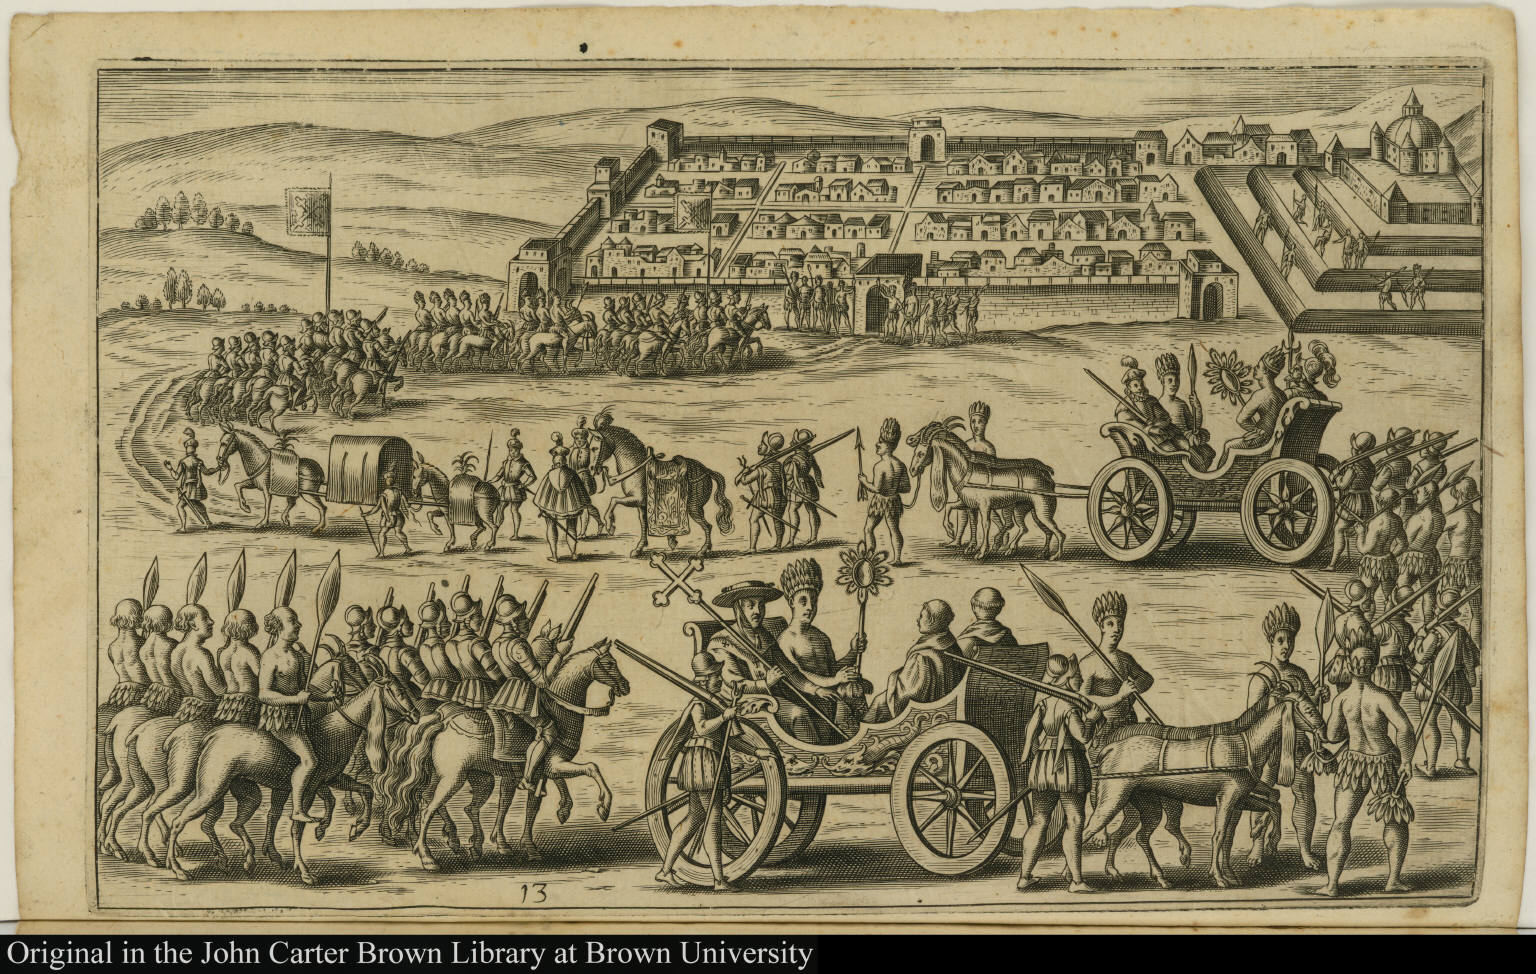 [View of Cuzco with royal carriage]